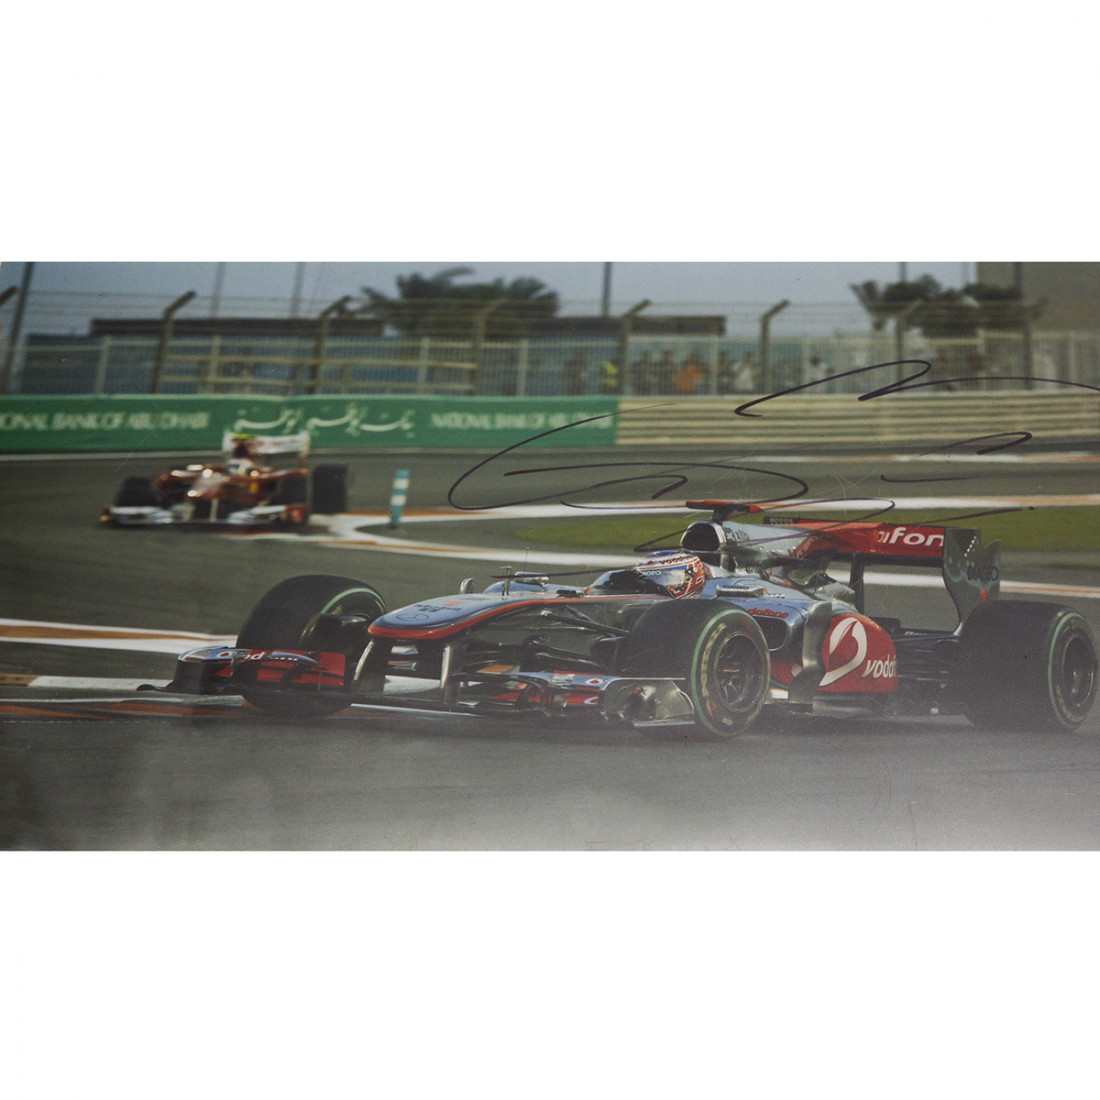 John Walker and Sons Signature Blend by Jenson Button / One of Only 25